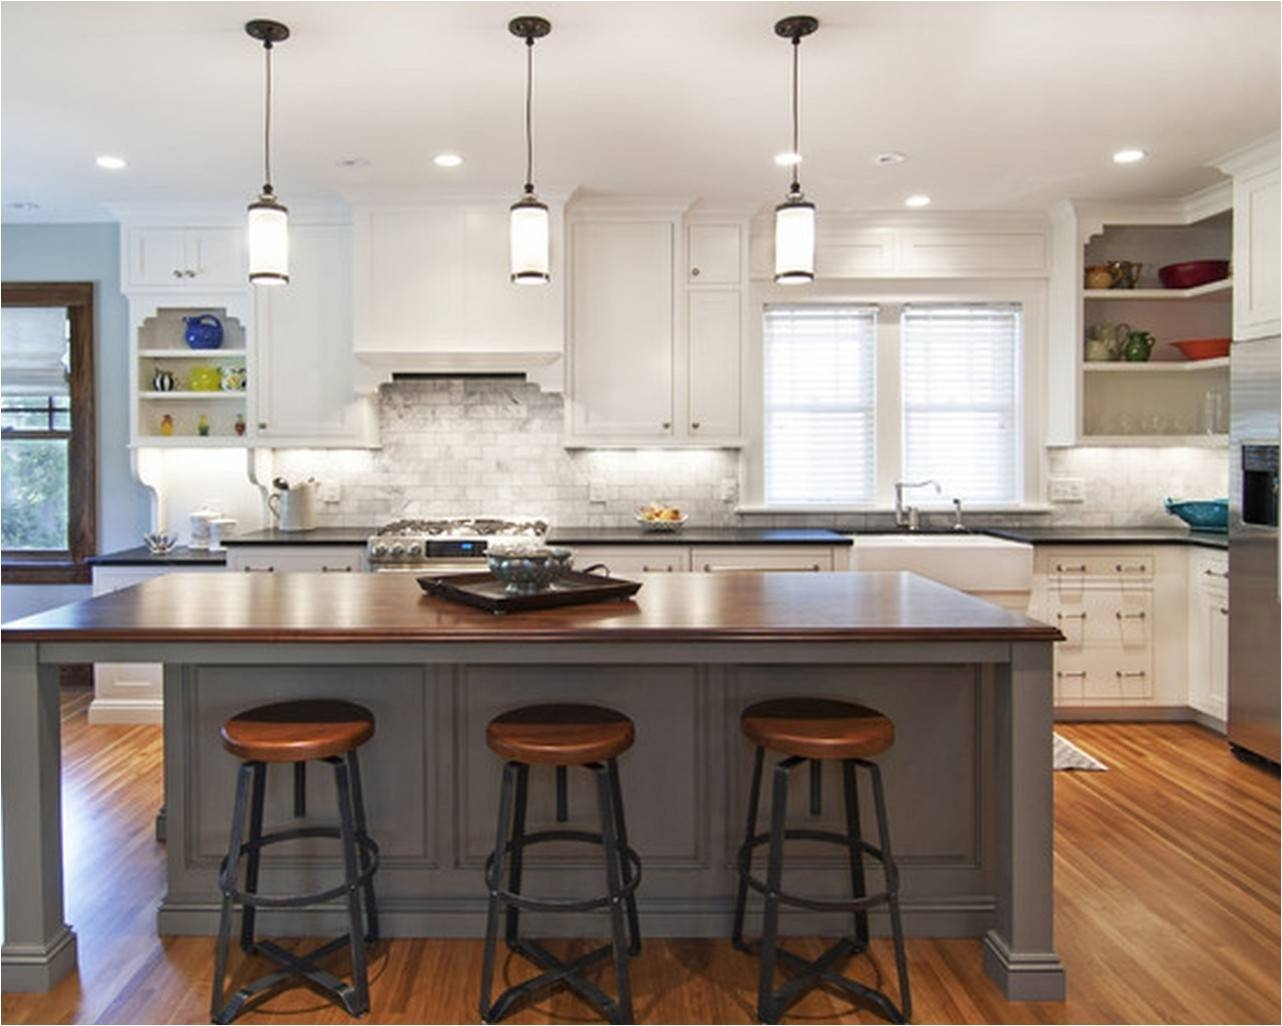 Cozy And Inviting Kitchen Island Lighting | Lighting Designs Ideas Pertaining To Lighting Pendants For Kitchen Islands (View 6 of 15)